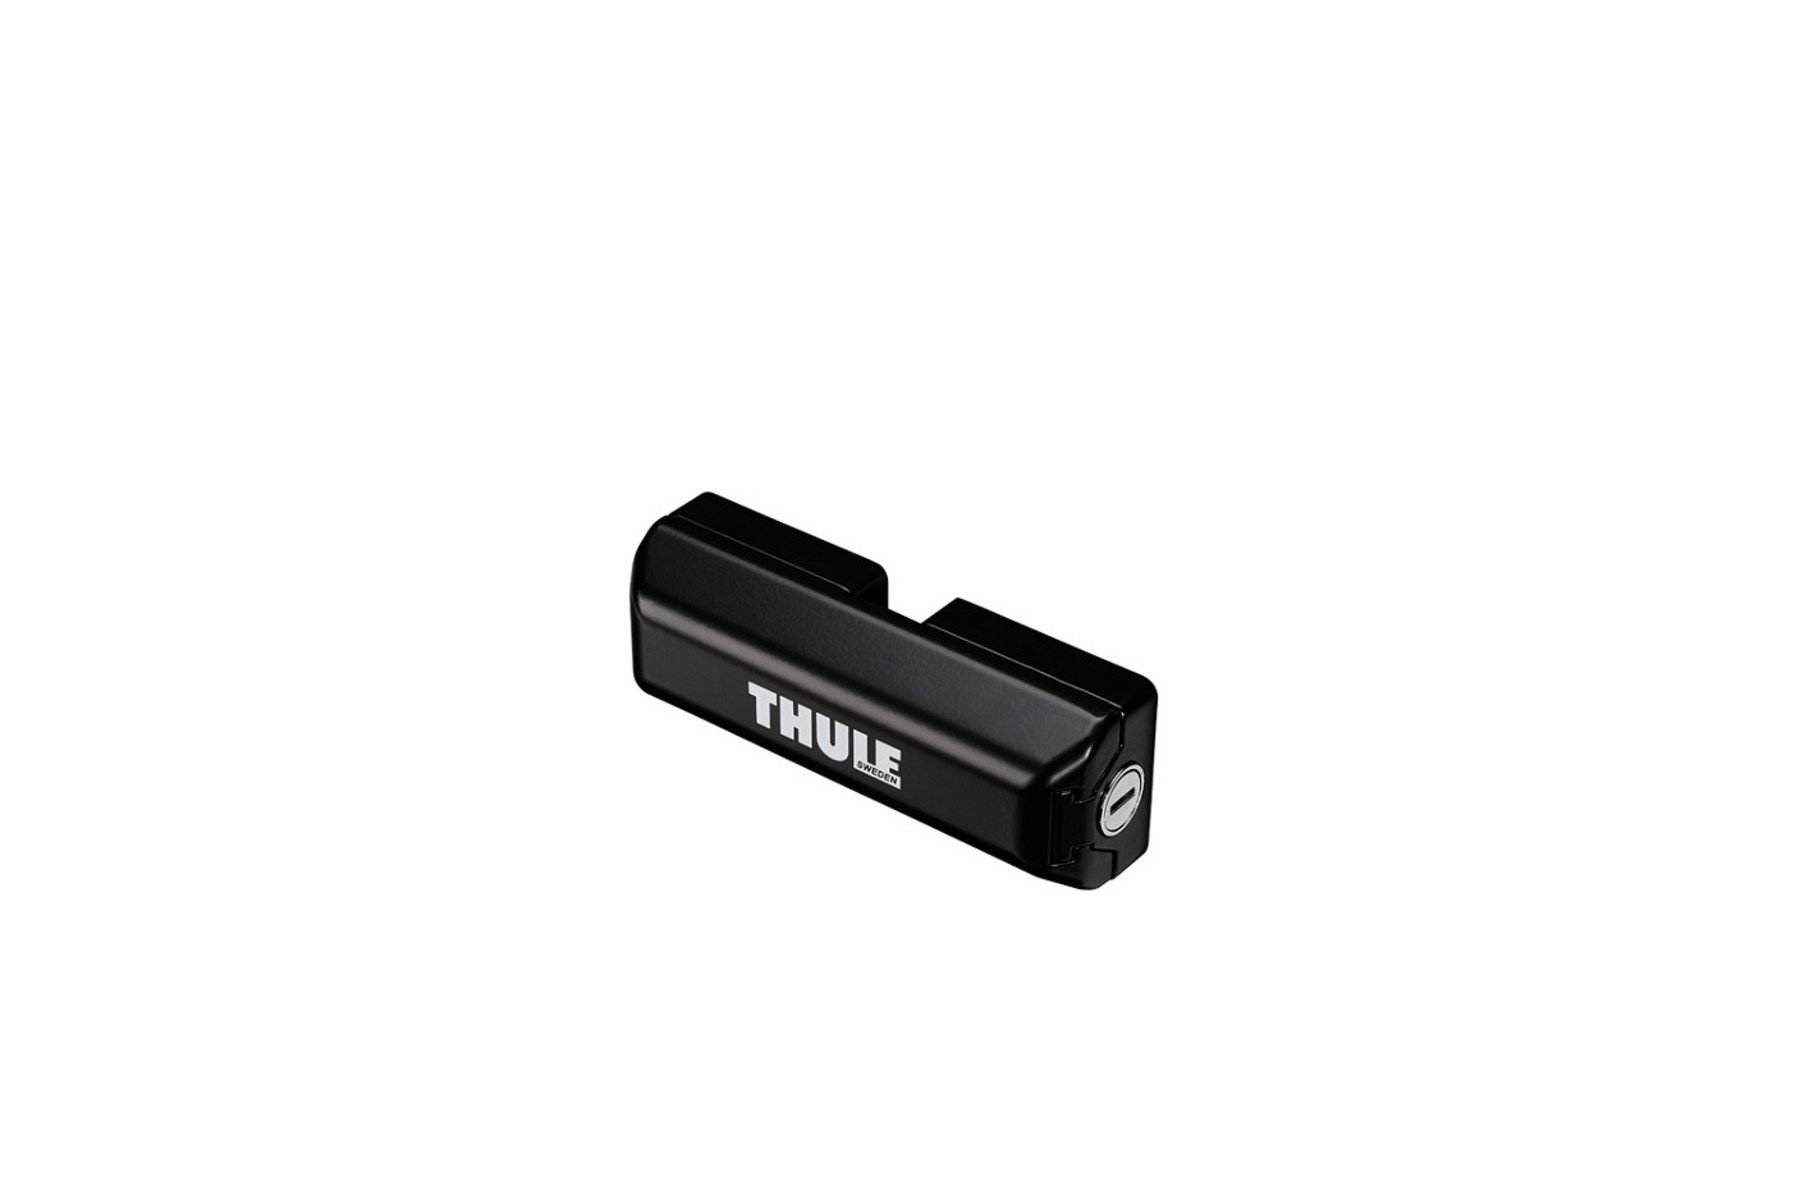 Thule Van Lock Closed Studio 309832